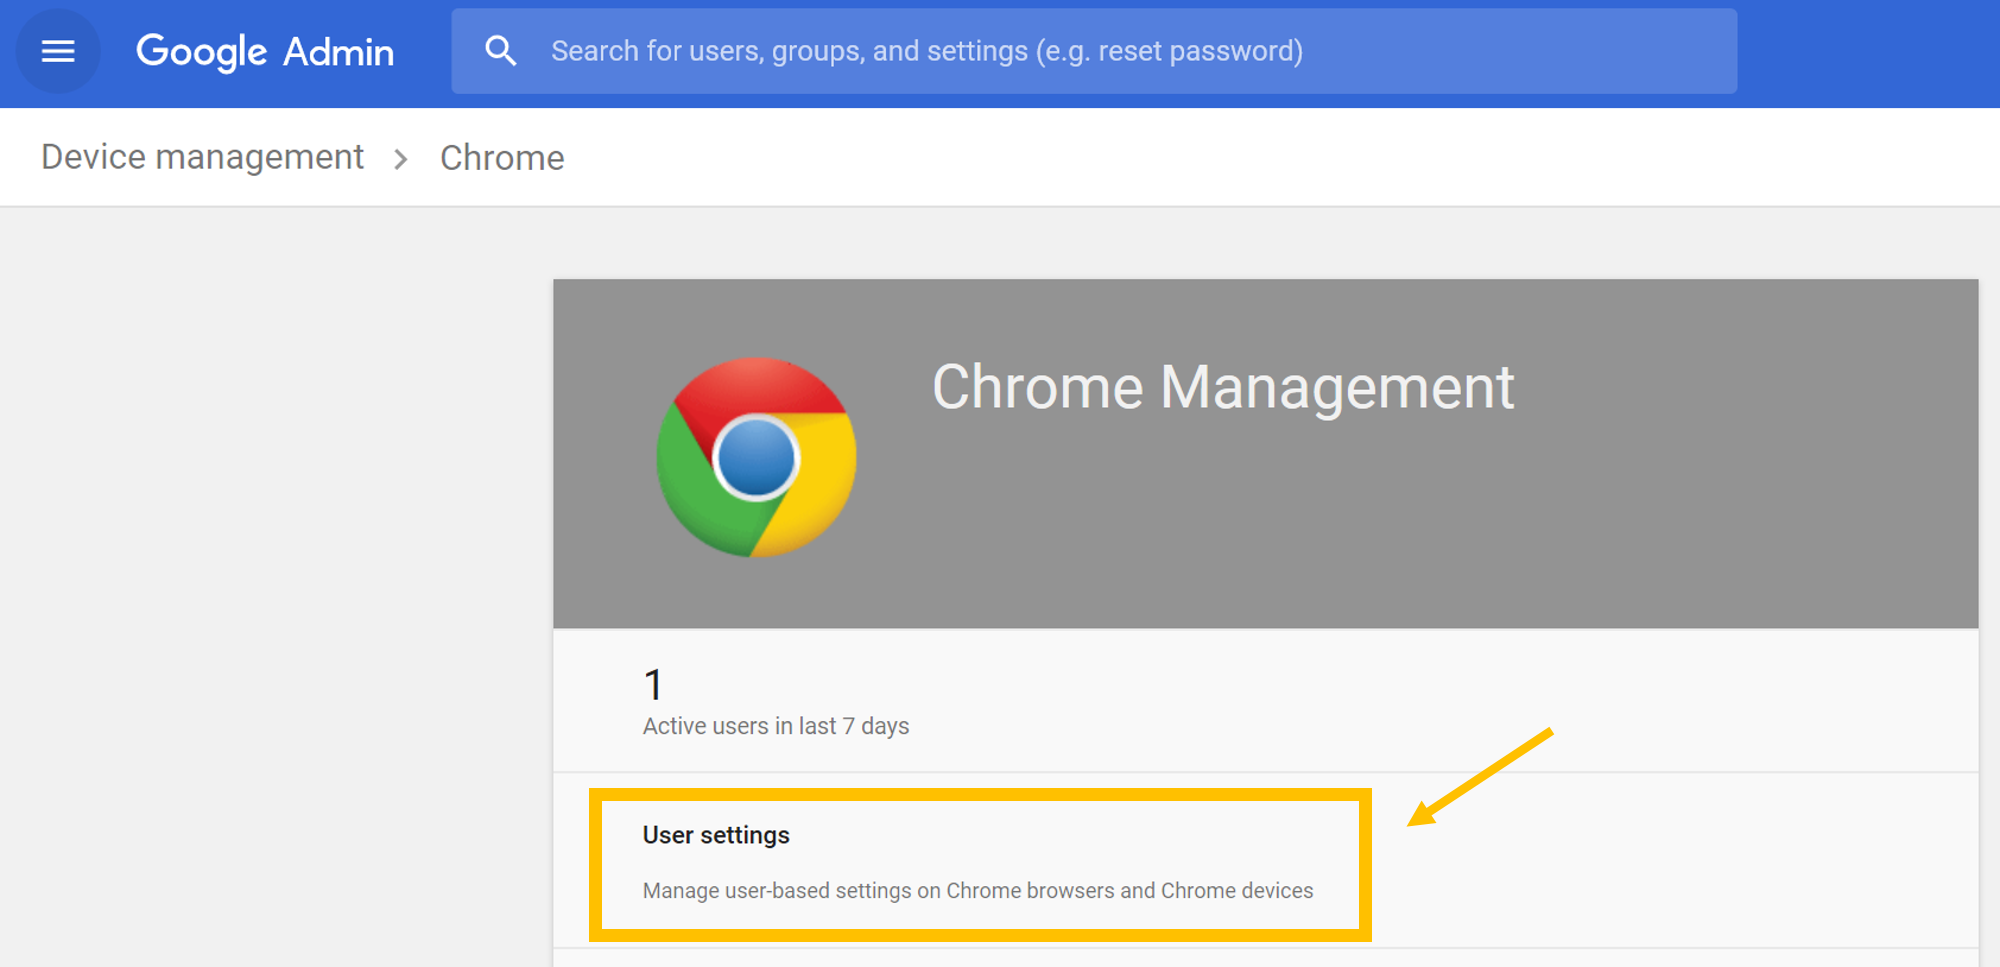 Device_Management_Chrome_Management_User_Settings.png